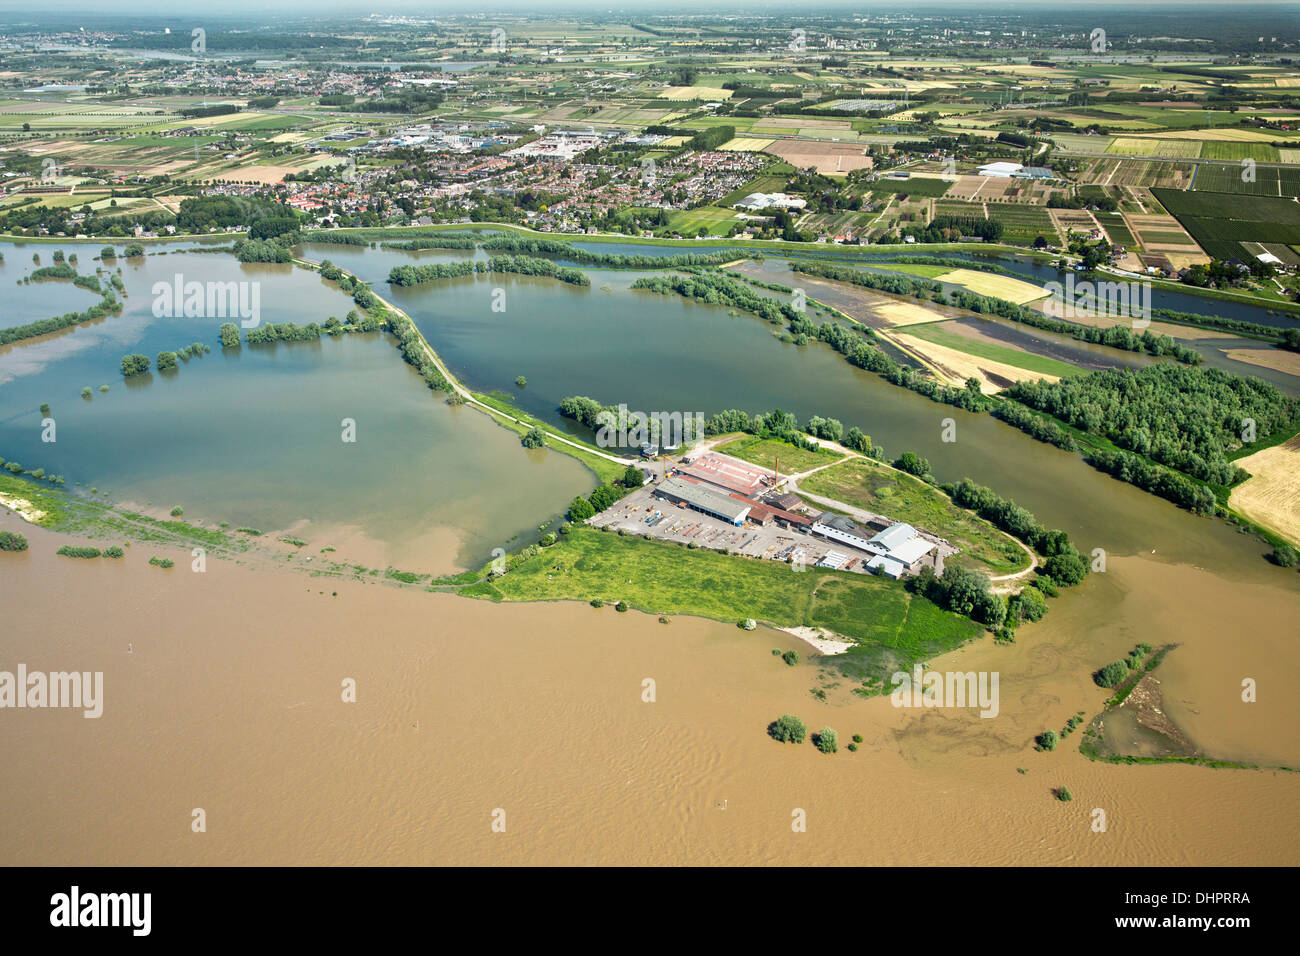 Netherlands, Dodewaard. Waal river. Flooded land and floodplains. Construction company. Aerial Stock Photo